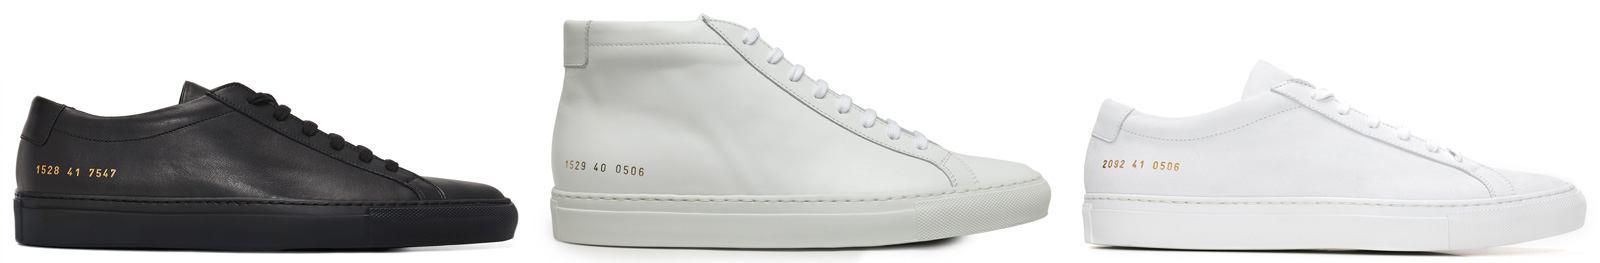 dsms_commonprojects.jpg